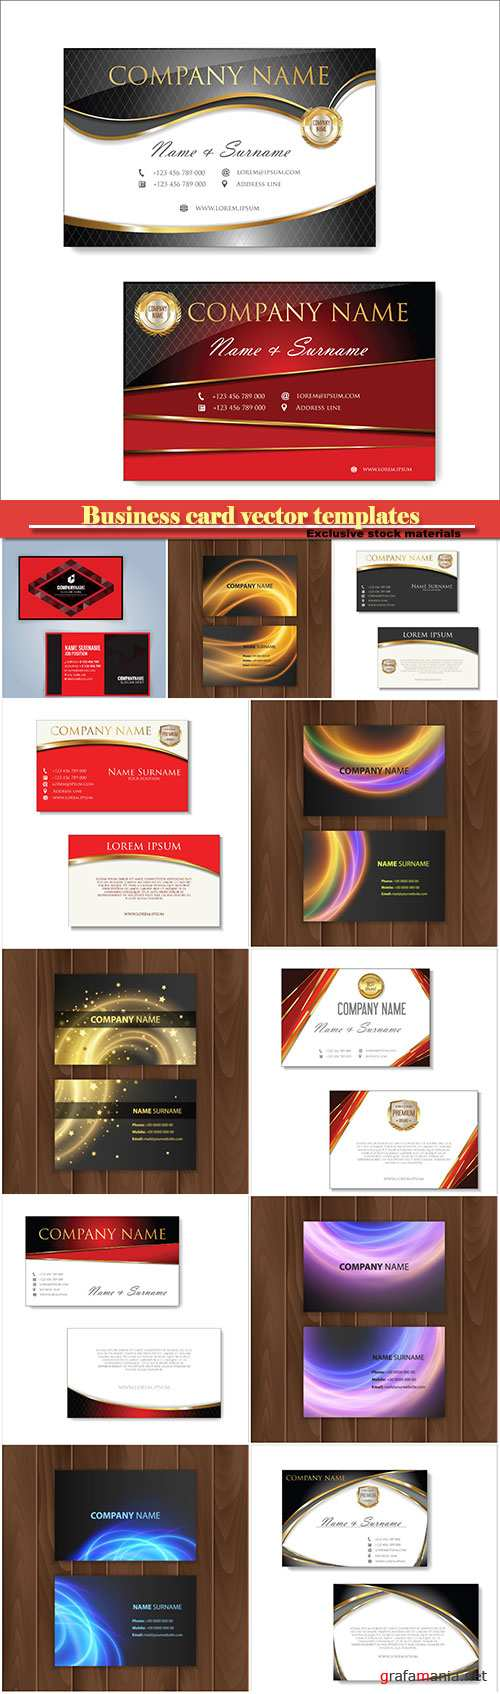 Business card vector templates # 28